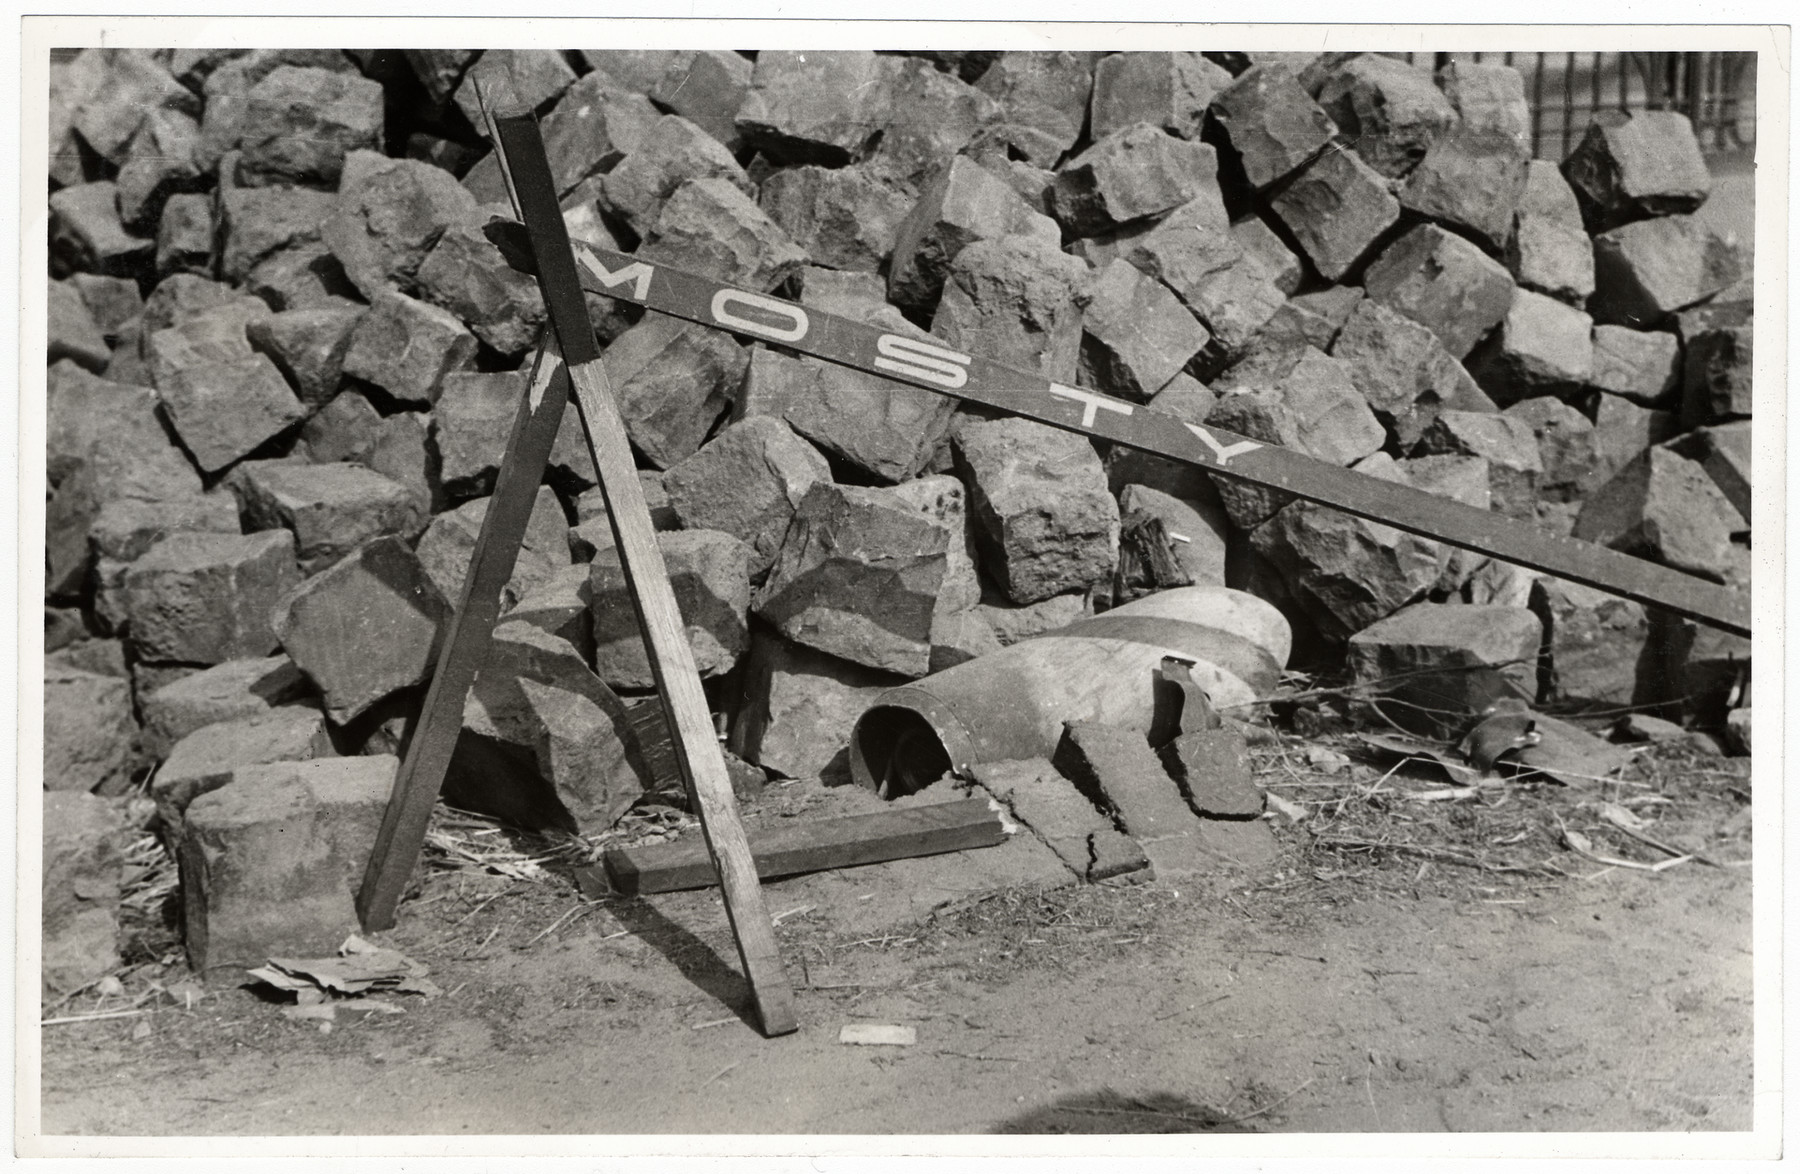 View of [what is probably the casing of a German bomb] lying next to a pile of bricks in besieged Warsaw.